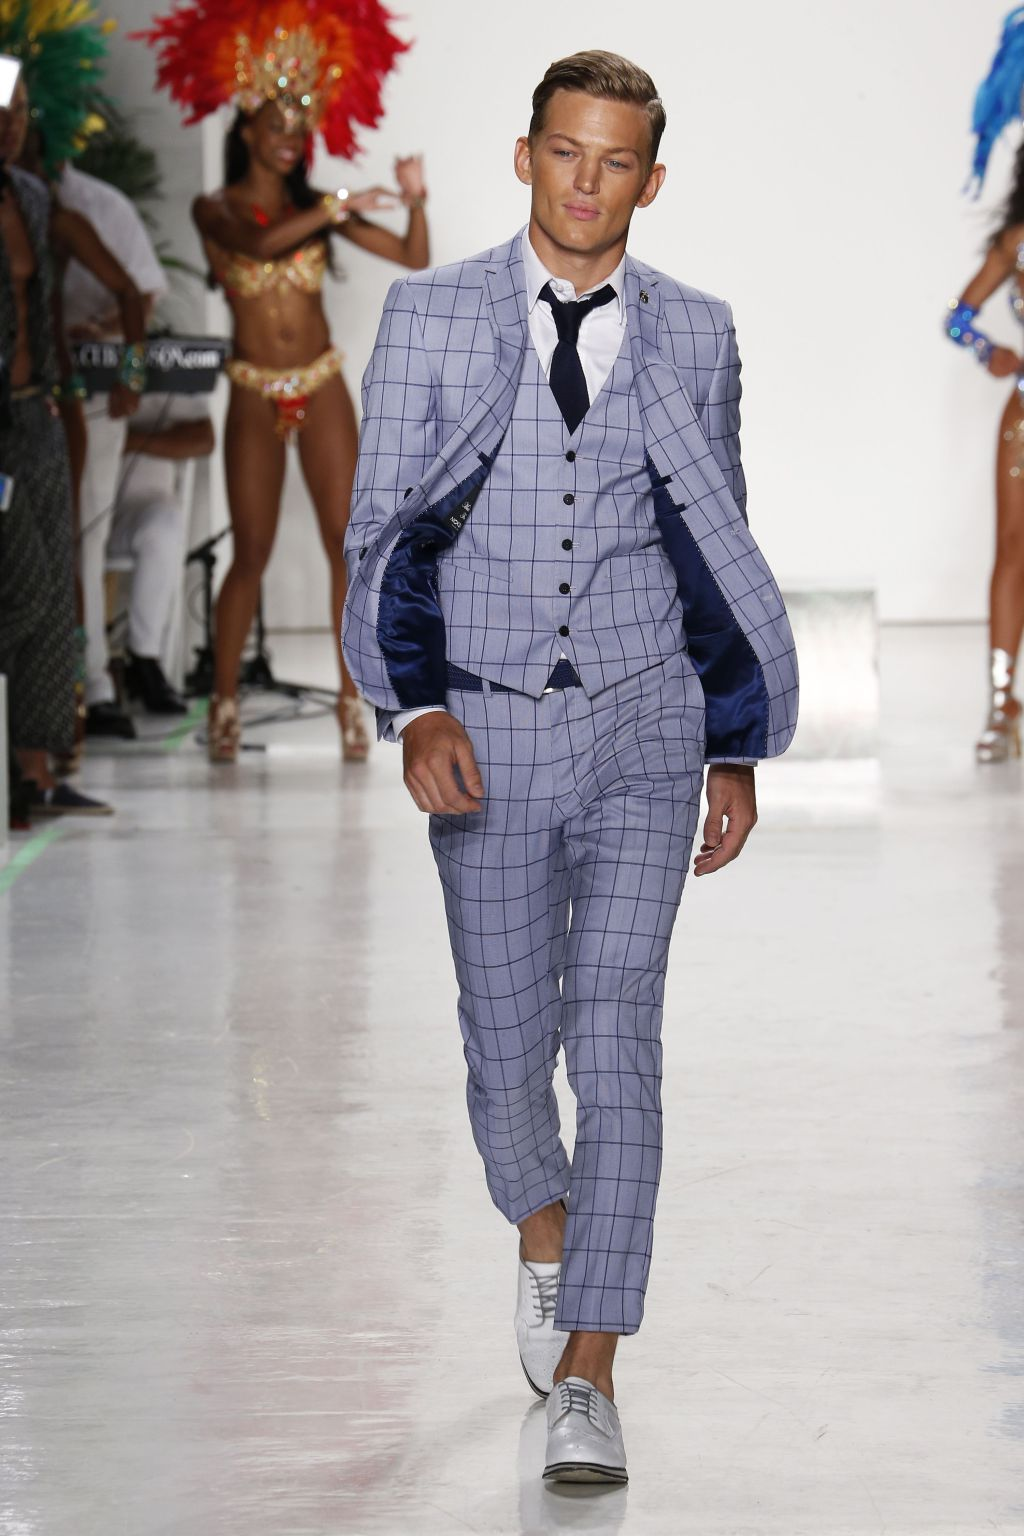 Male in blue three piece suit